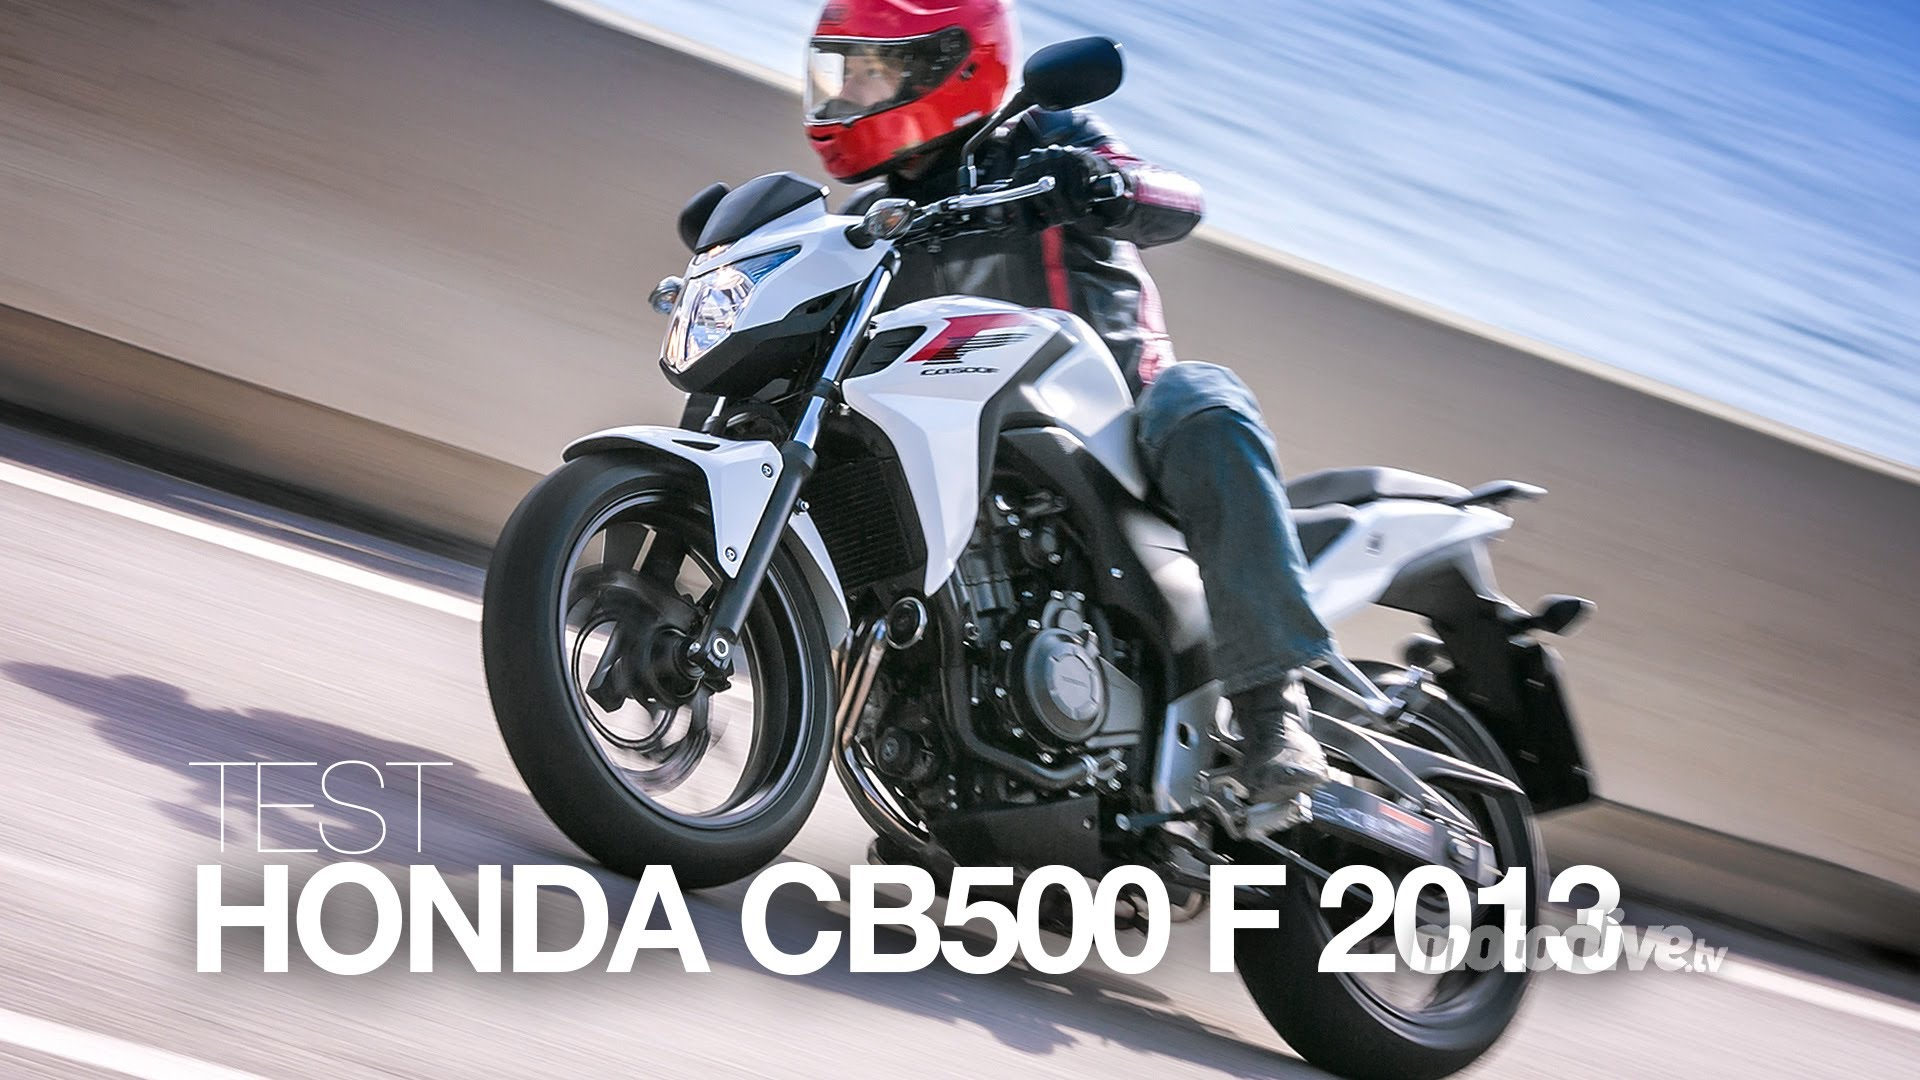 Back Download Honda CB 500 F ABS Picture 14 Size 1920x1080 Next